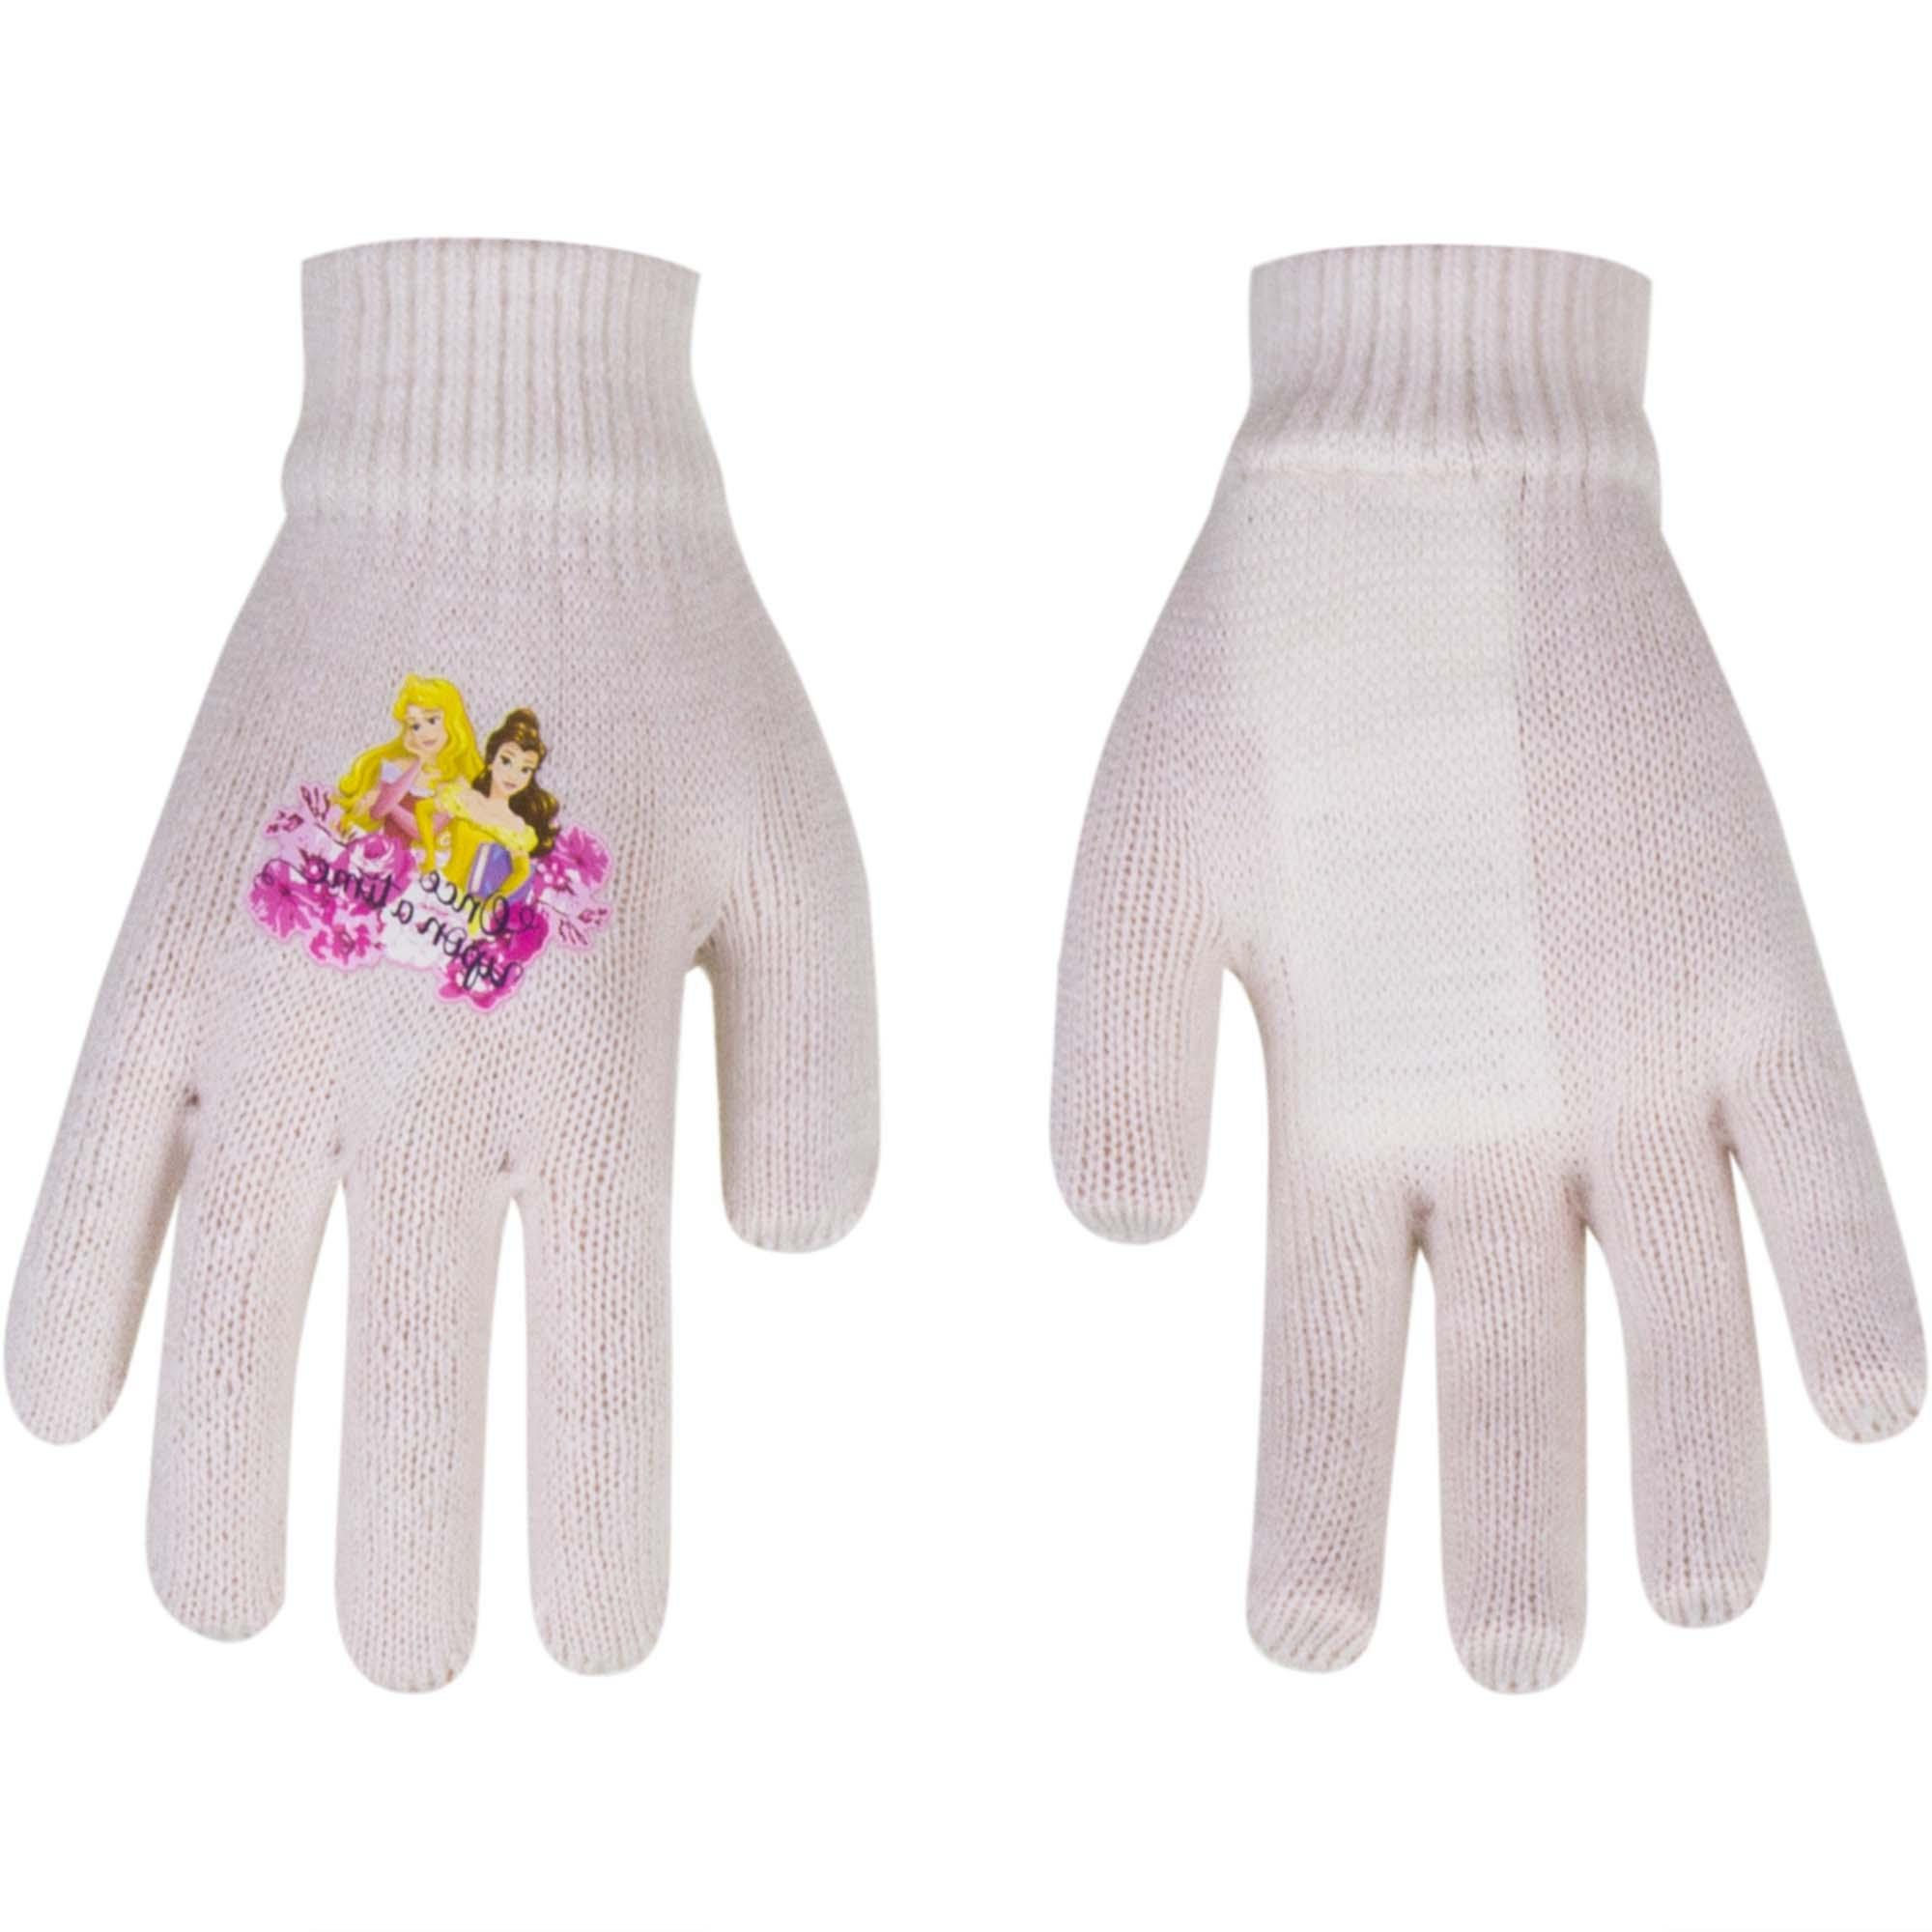 Princess gloves Magic White (Age: 2-5 years old)